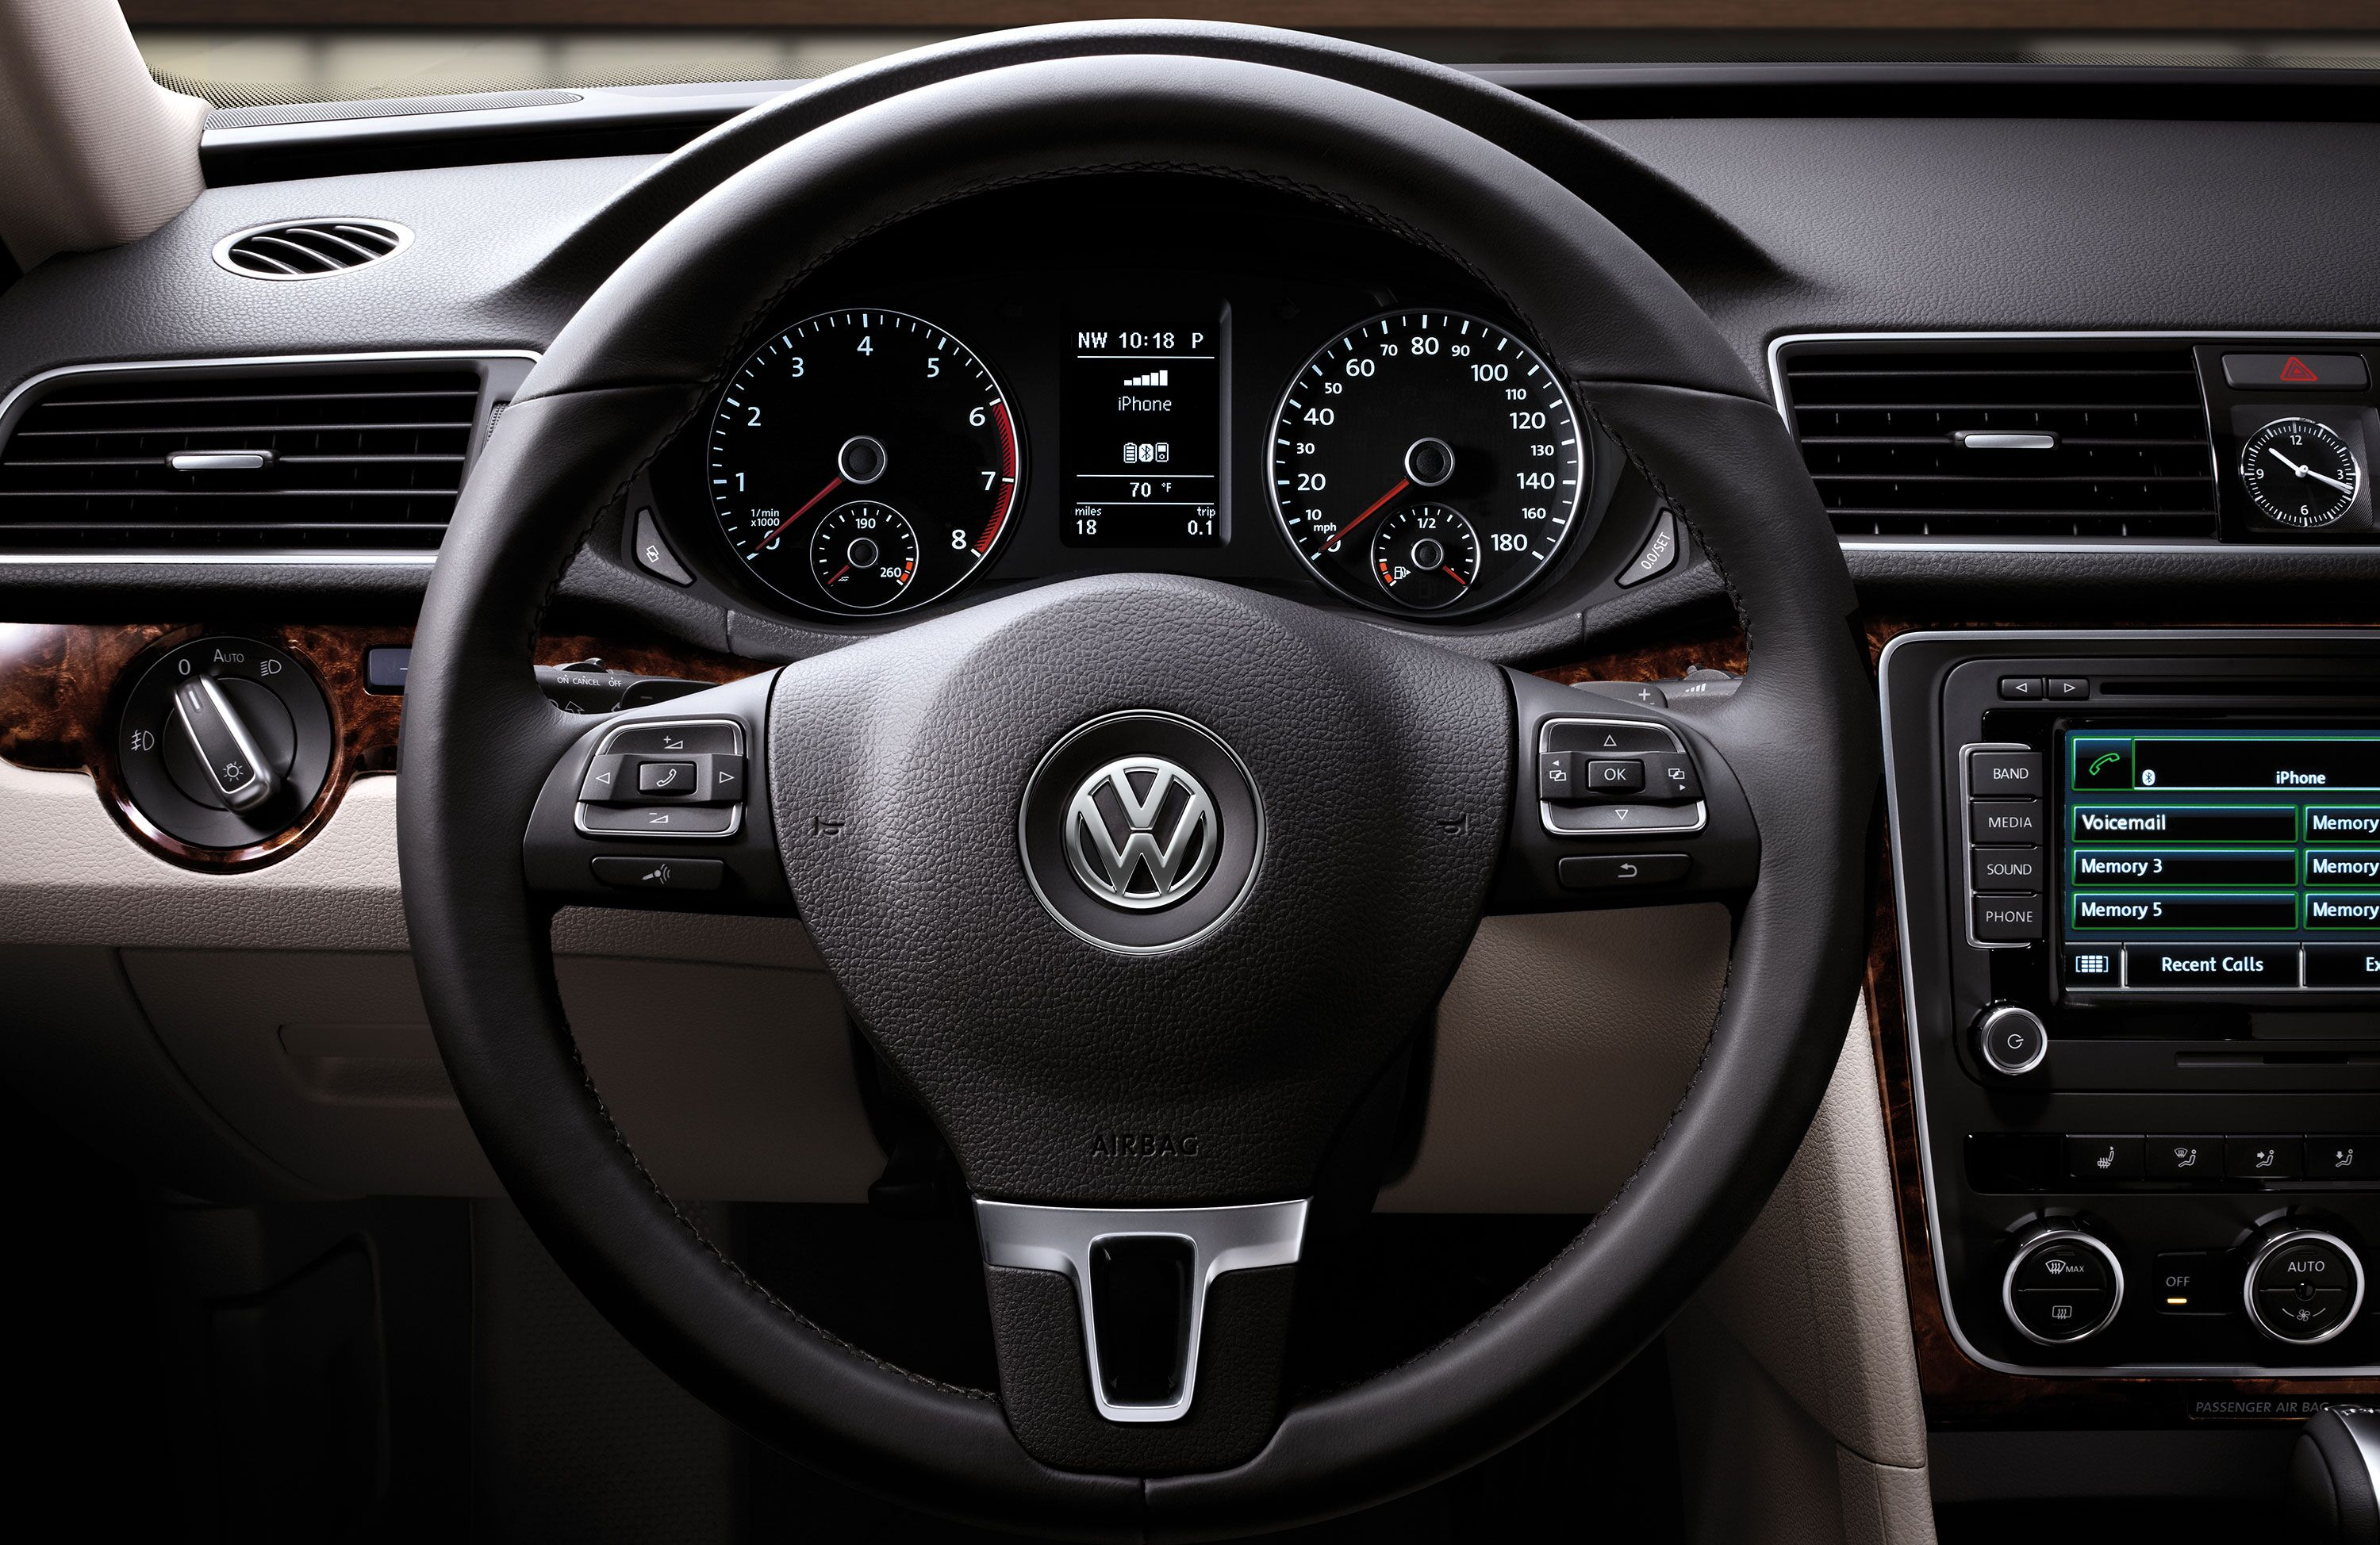 2015 volkwagen passat technology irvine ca norm reeves vw. Black Bedroom Furniture Sets. Home Design Ideas